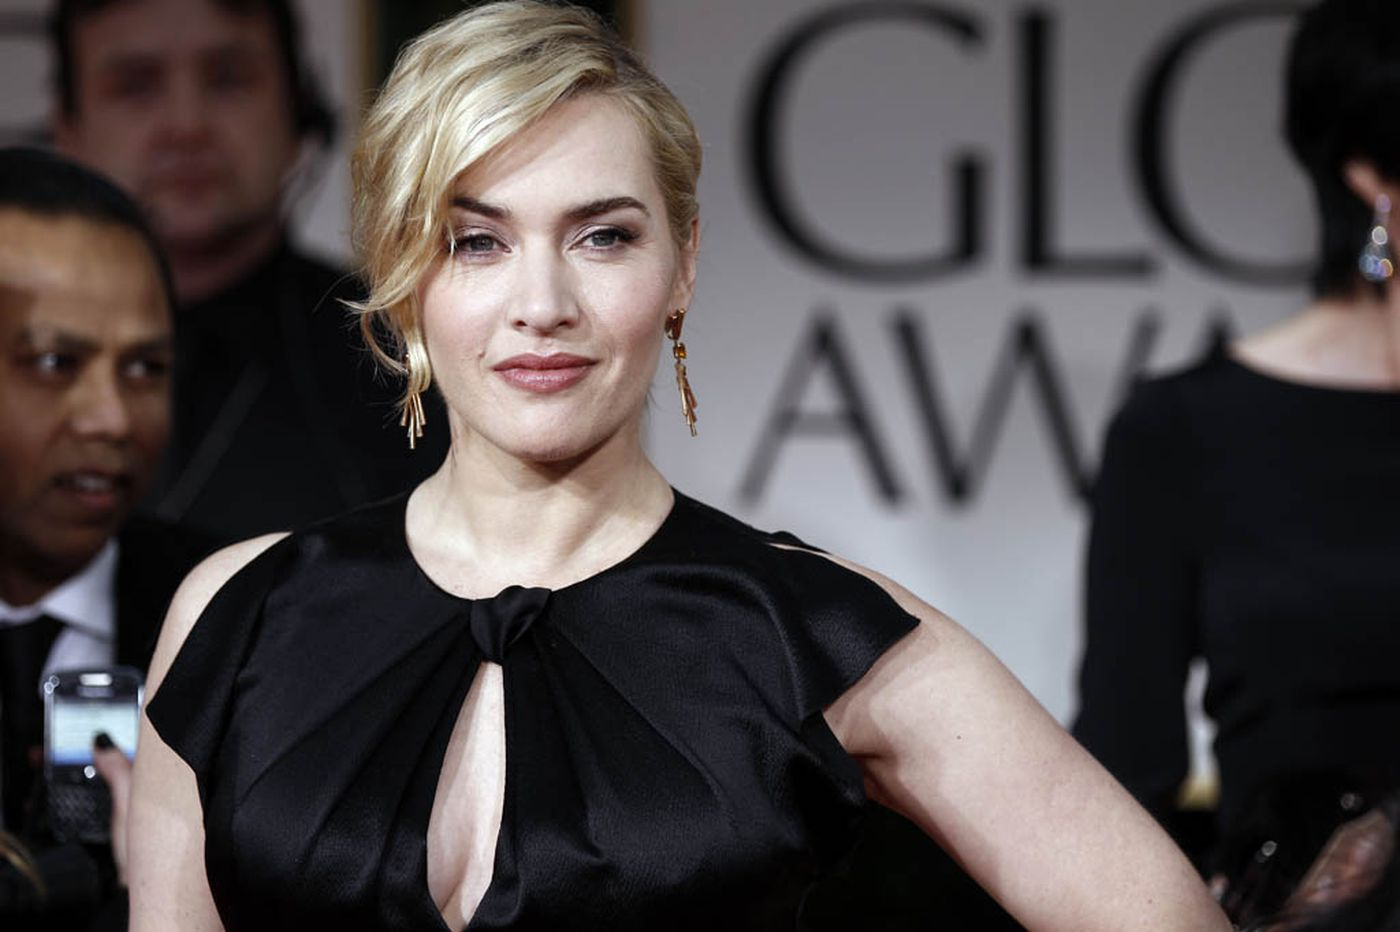 New Kate Winslet HBO show starts filming in Pa. suburbs